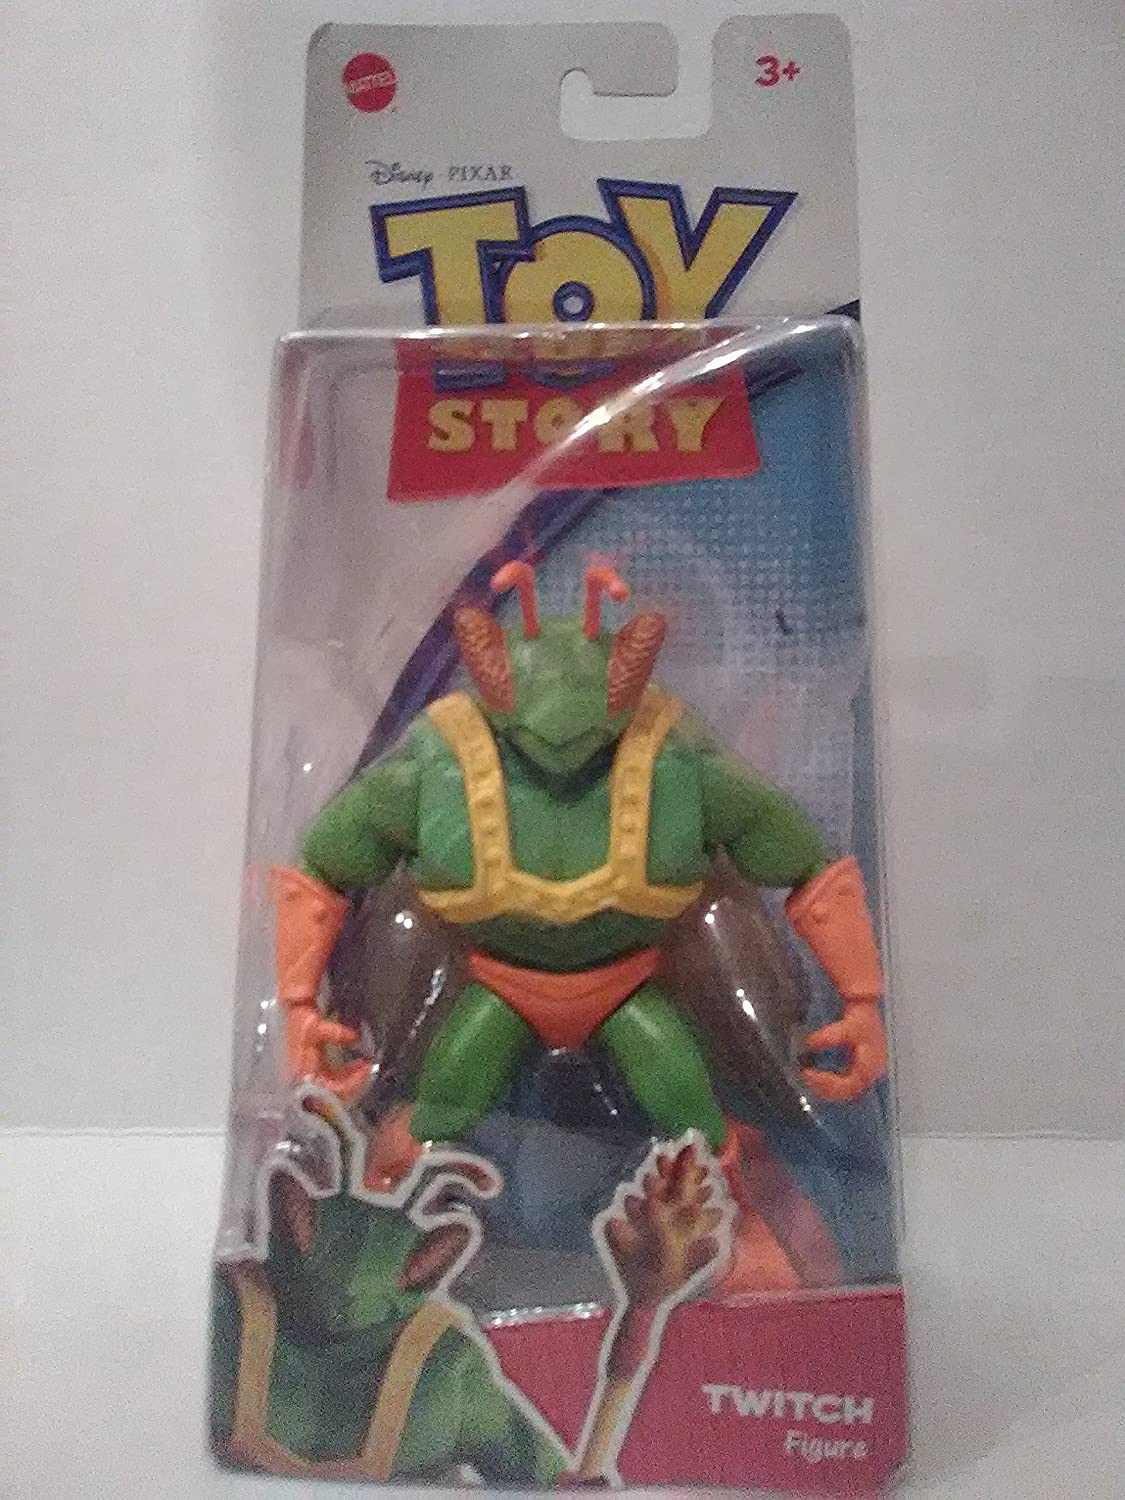 Disney Pixar Toy Story 3 Basic Action Figure - Twitch ...